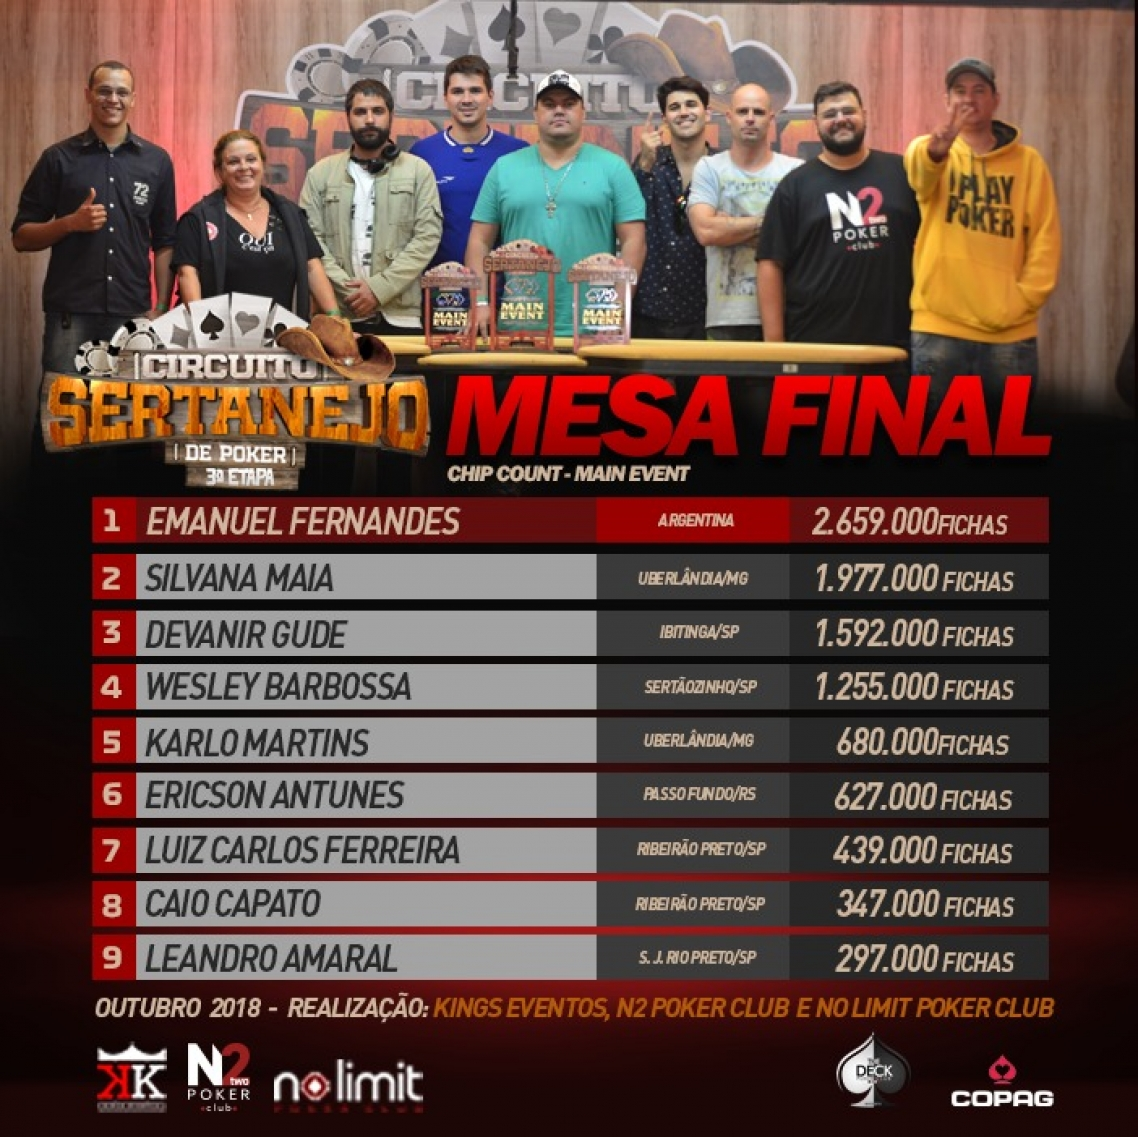 Está formada a mesa final da 3ª Etapa do Circuito Sertanejo de Poker